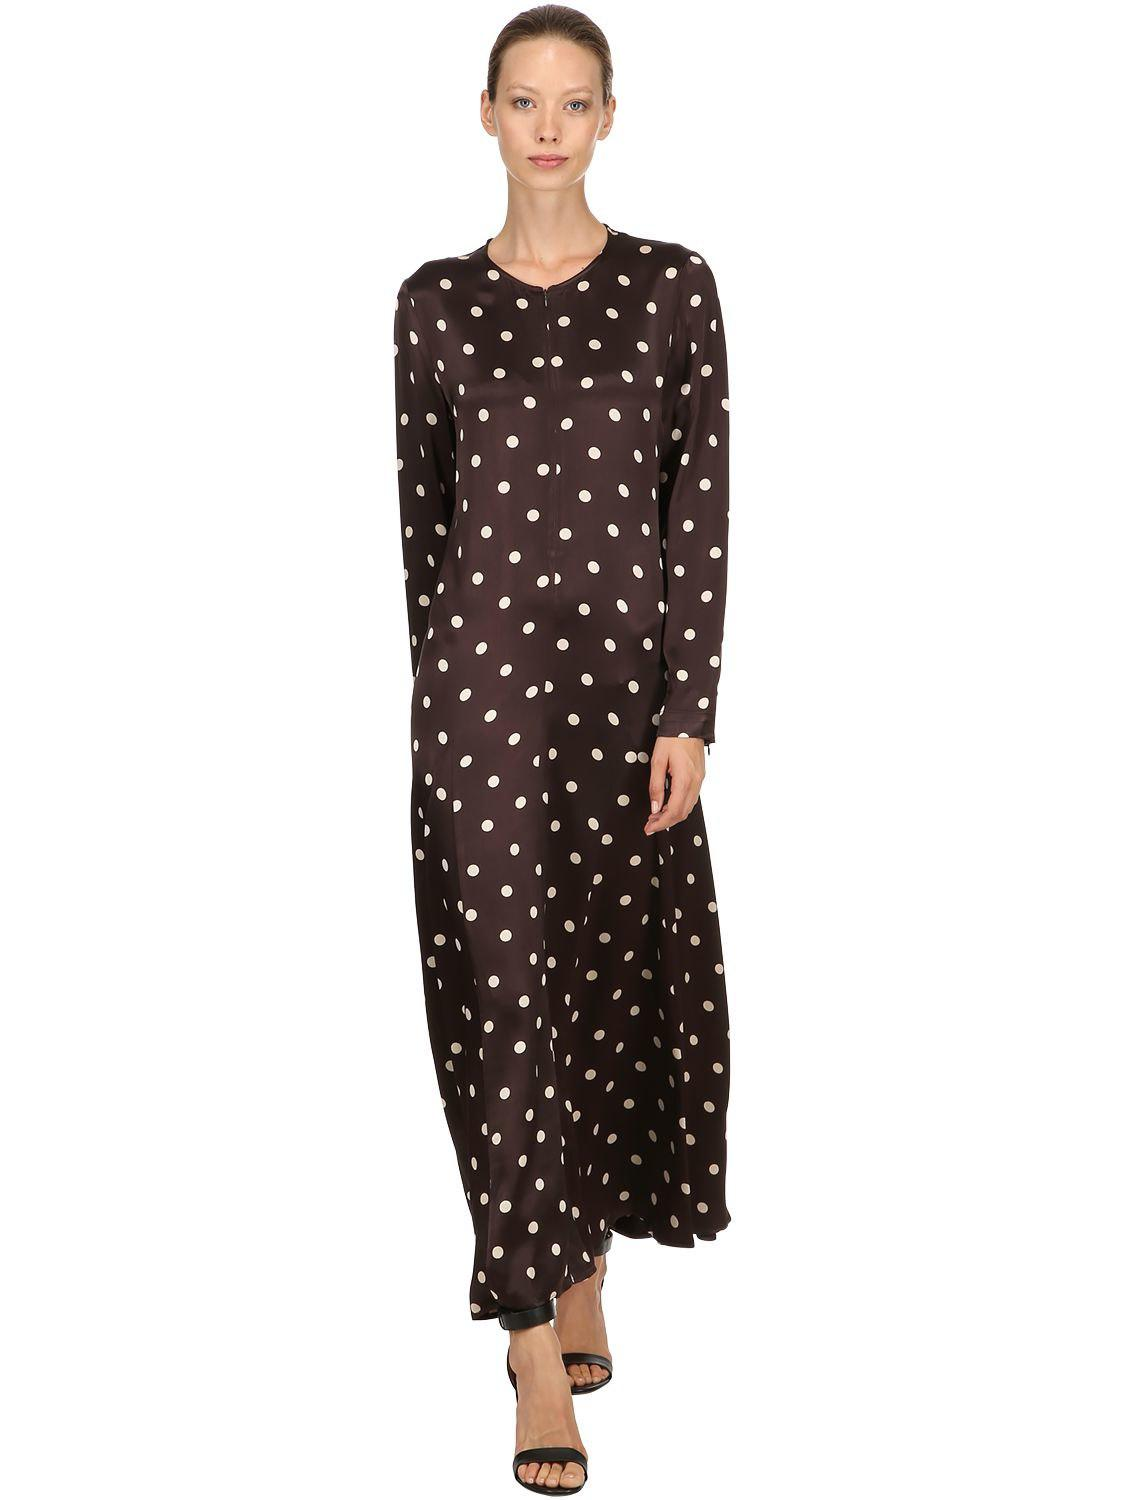 fde8b840 Ganni Cameron Polka Dots Satin Viscose Dress in Brown - Lyst